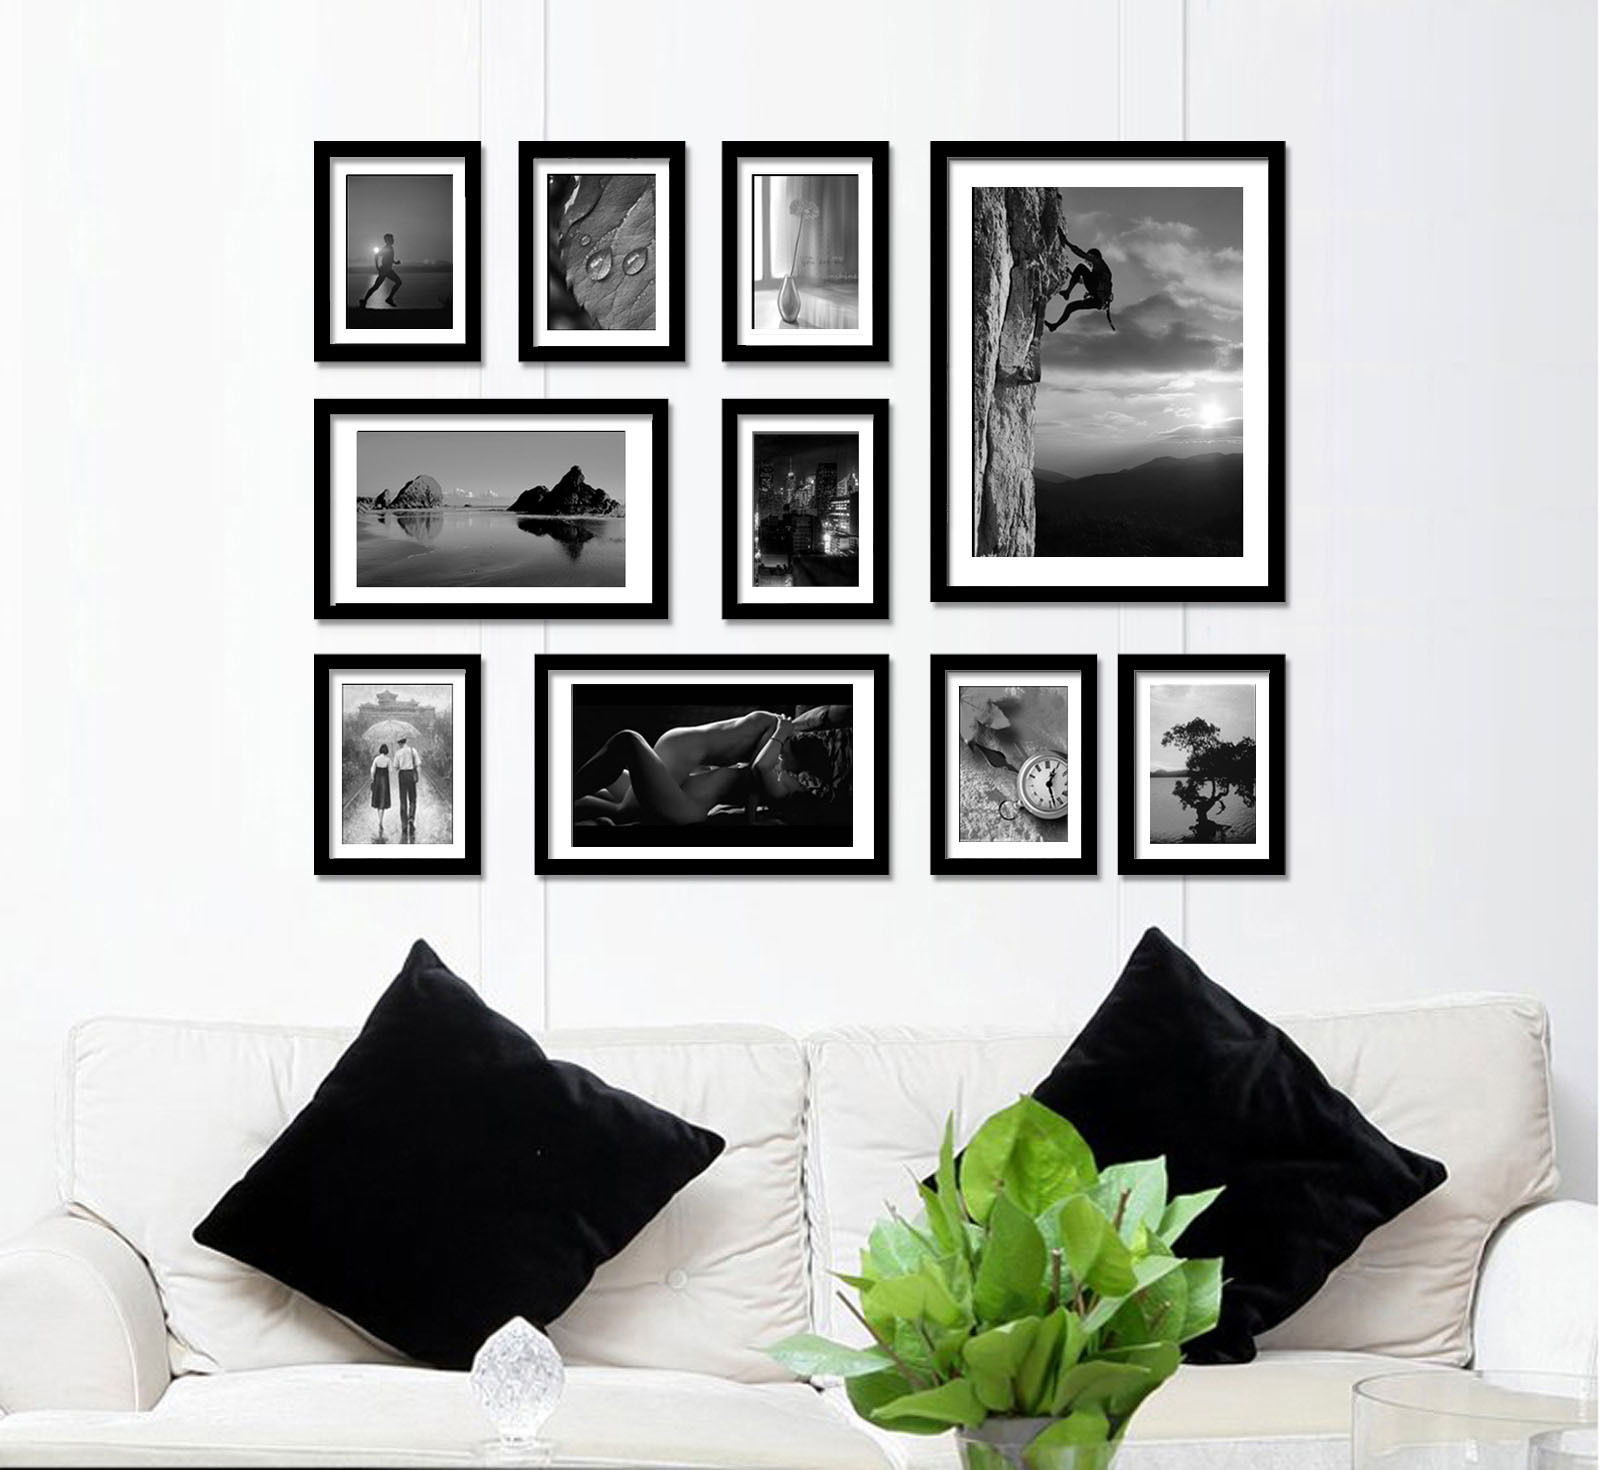 Frames On Wall 28+ [ picture frame on wall ] | project home frame wall,how to